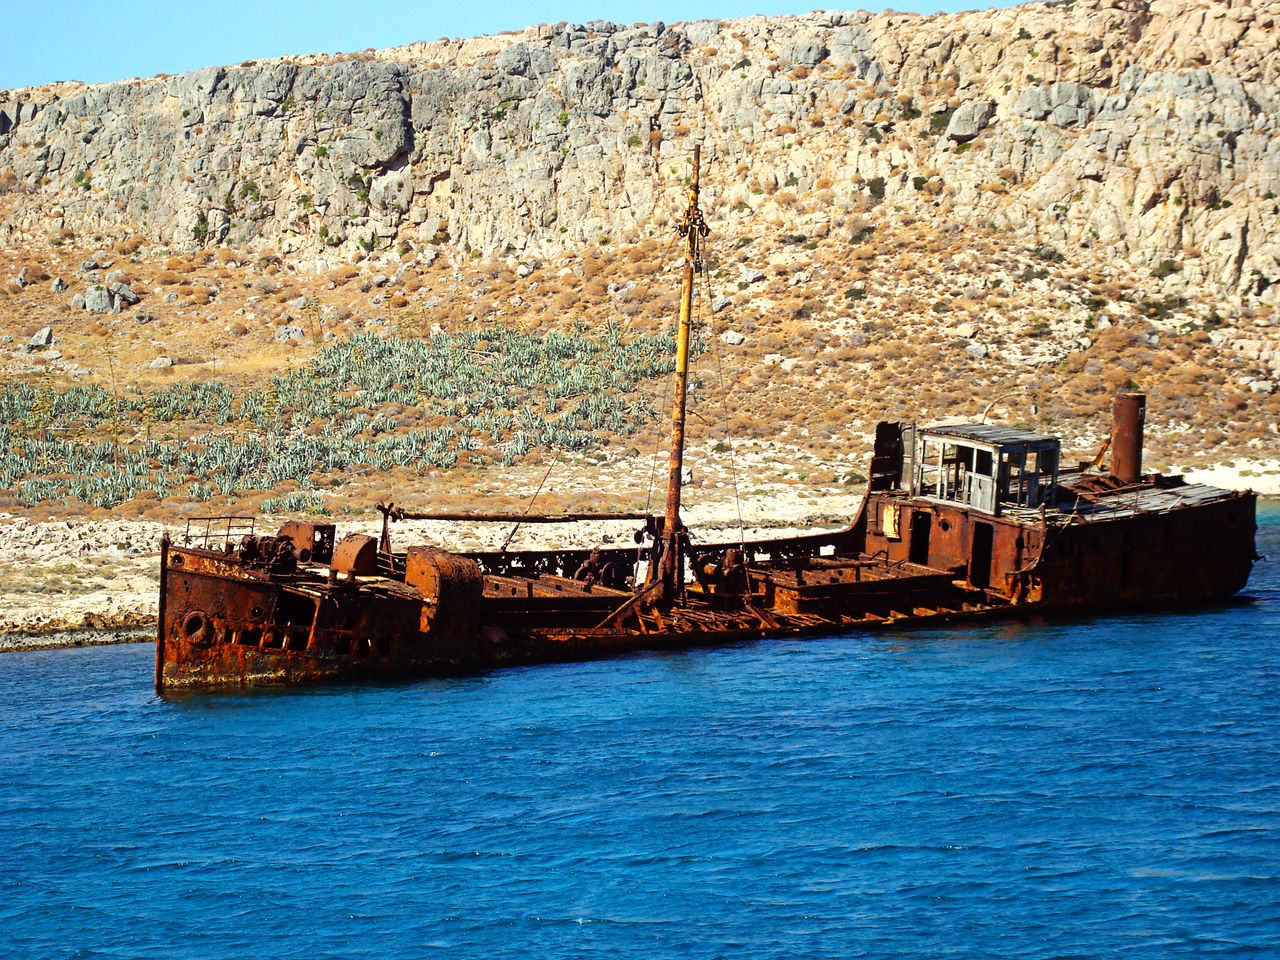 Greece Crete Balos Beach Abandoned Iron Oxide Boat Relitto Relict Sea Blue Inquinamento Man Vs Nature